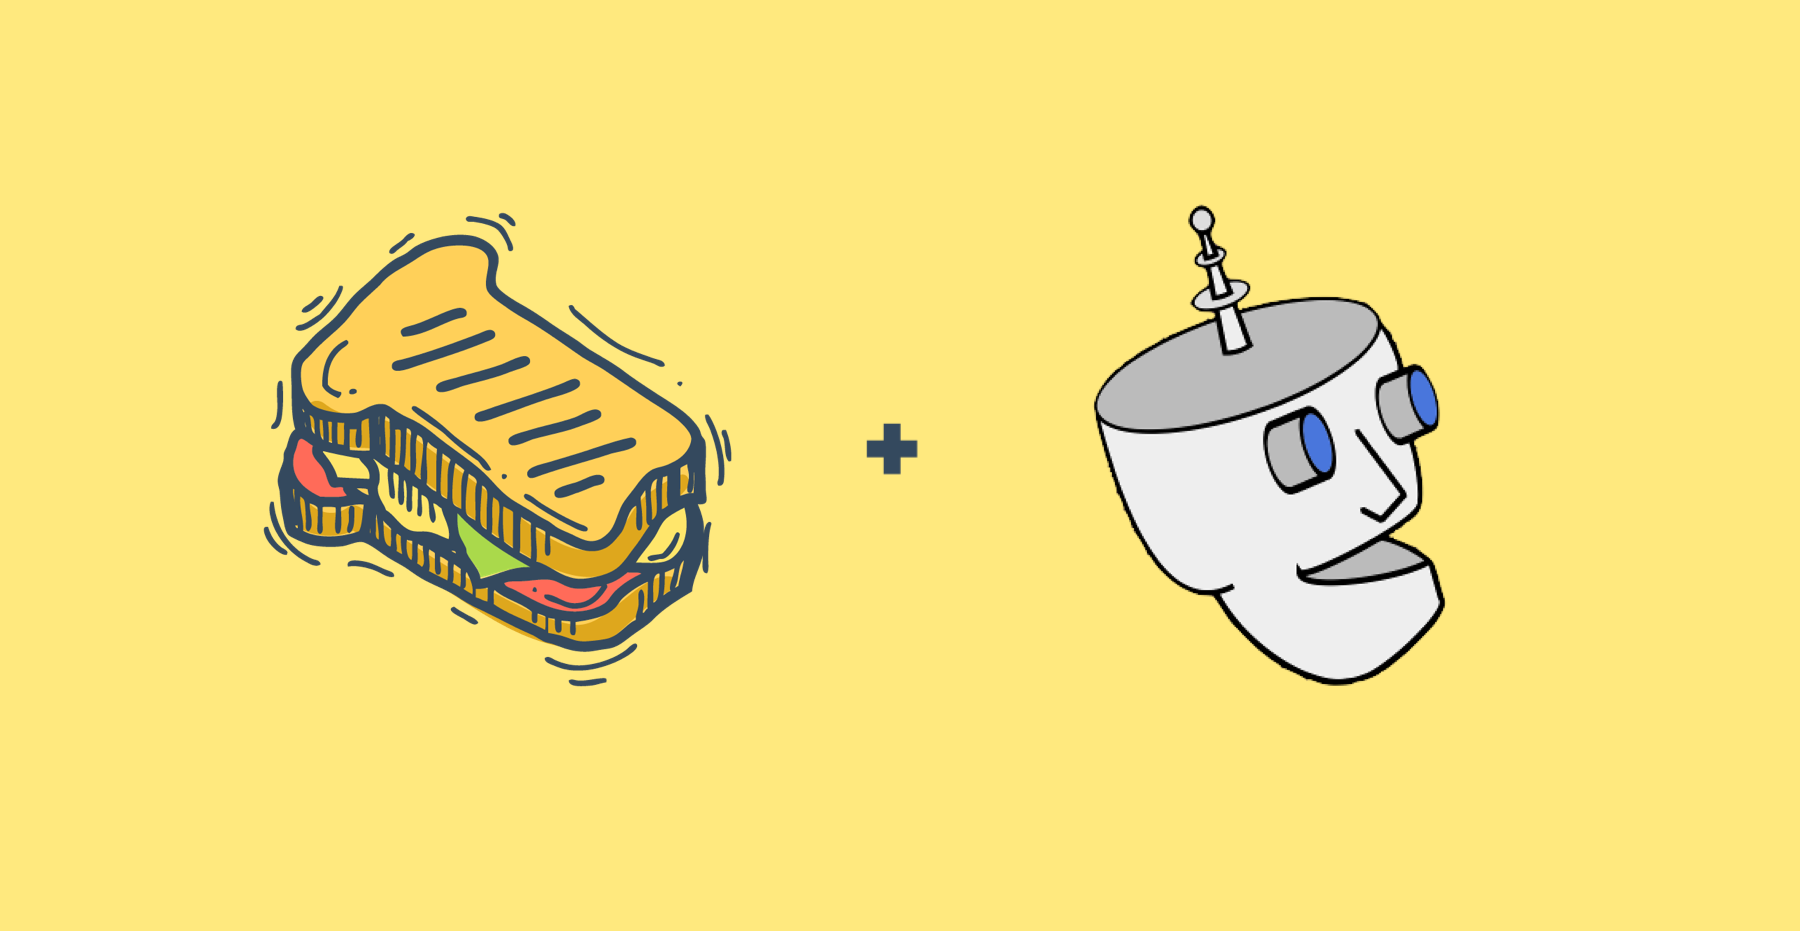 Bocadillo + ChatterBot = Awesome tutorial material.